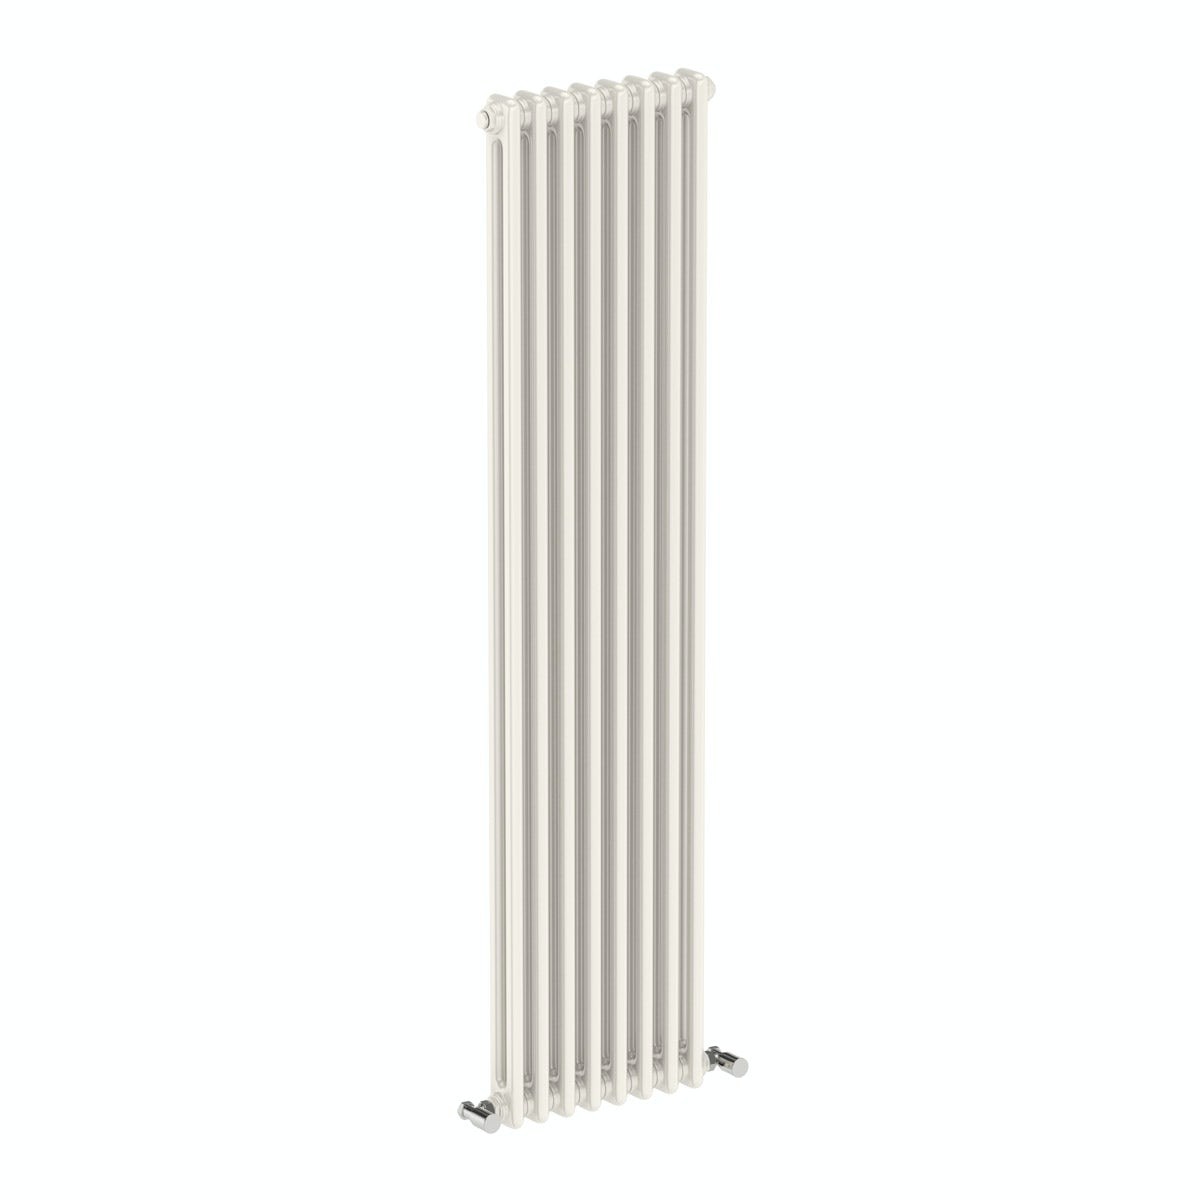 The Bath Co. Dulwich Vertical white double column radiator 1500 x 380 offer pack